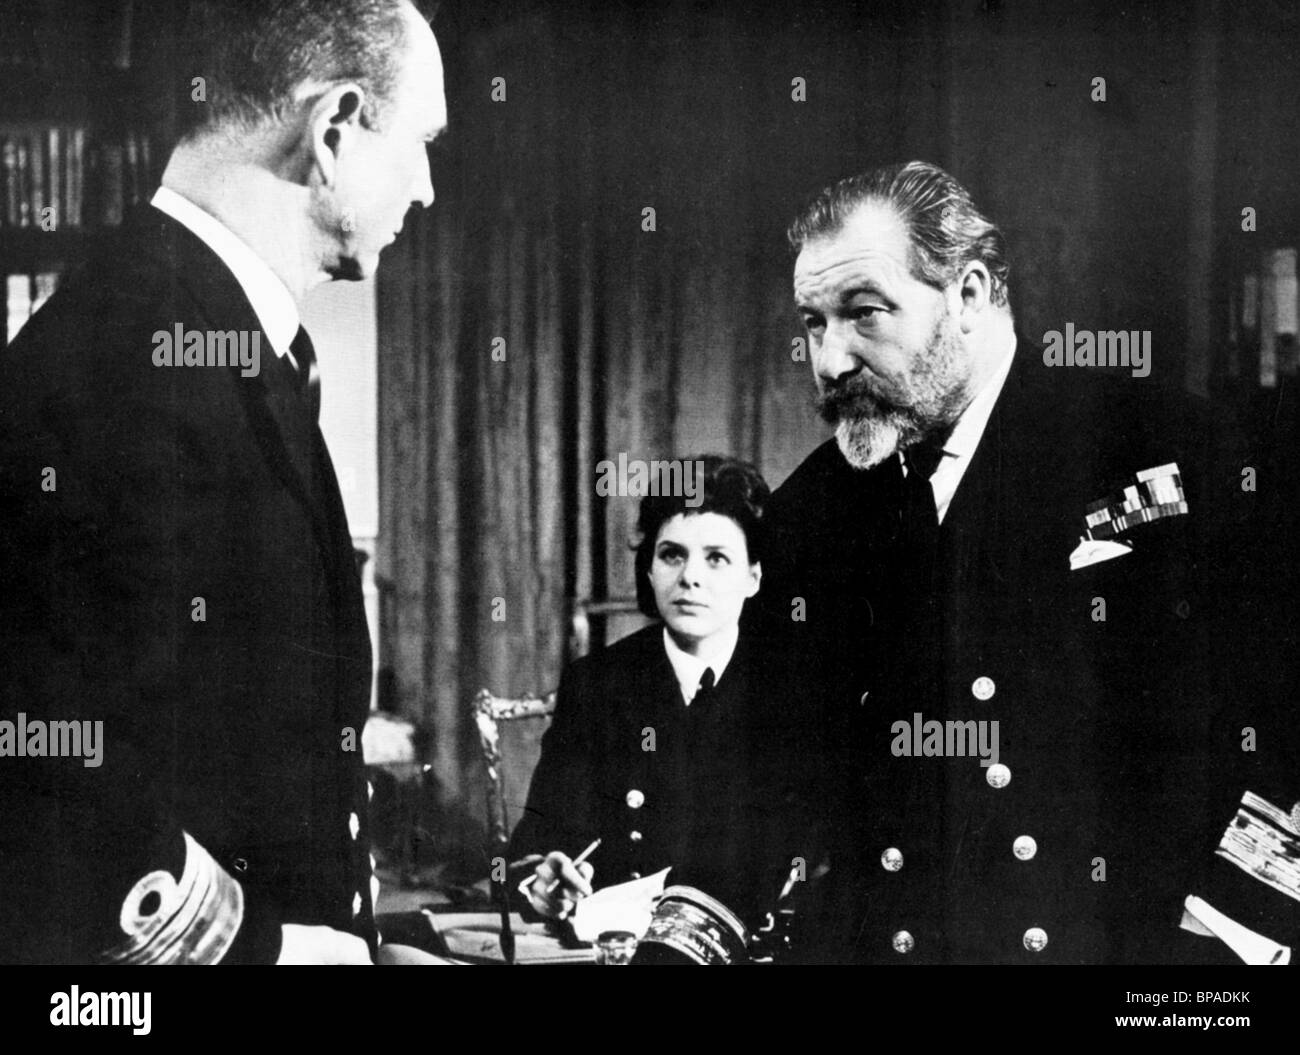 ROBERT FLEMYNG, JAMES ROBERTSON JUSTICE, MYSTERY SUBMARINE, 1963 - Stock Image